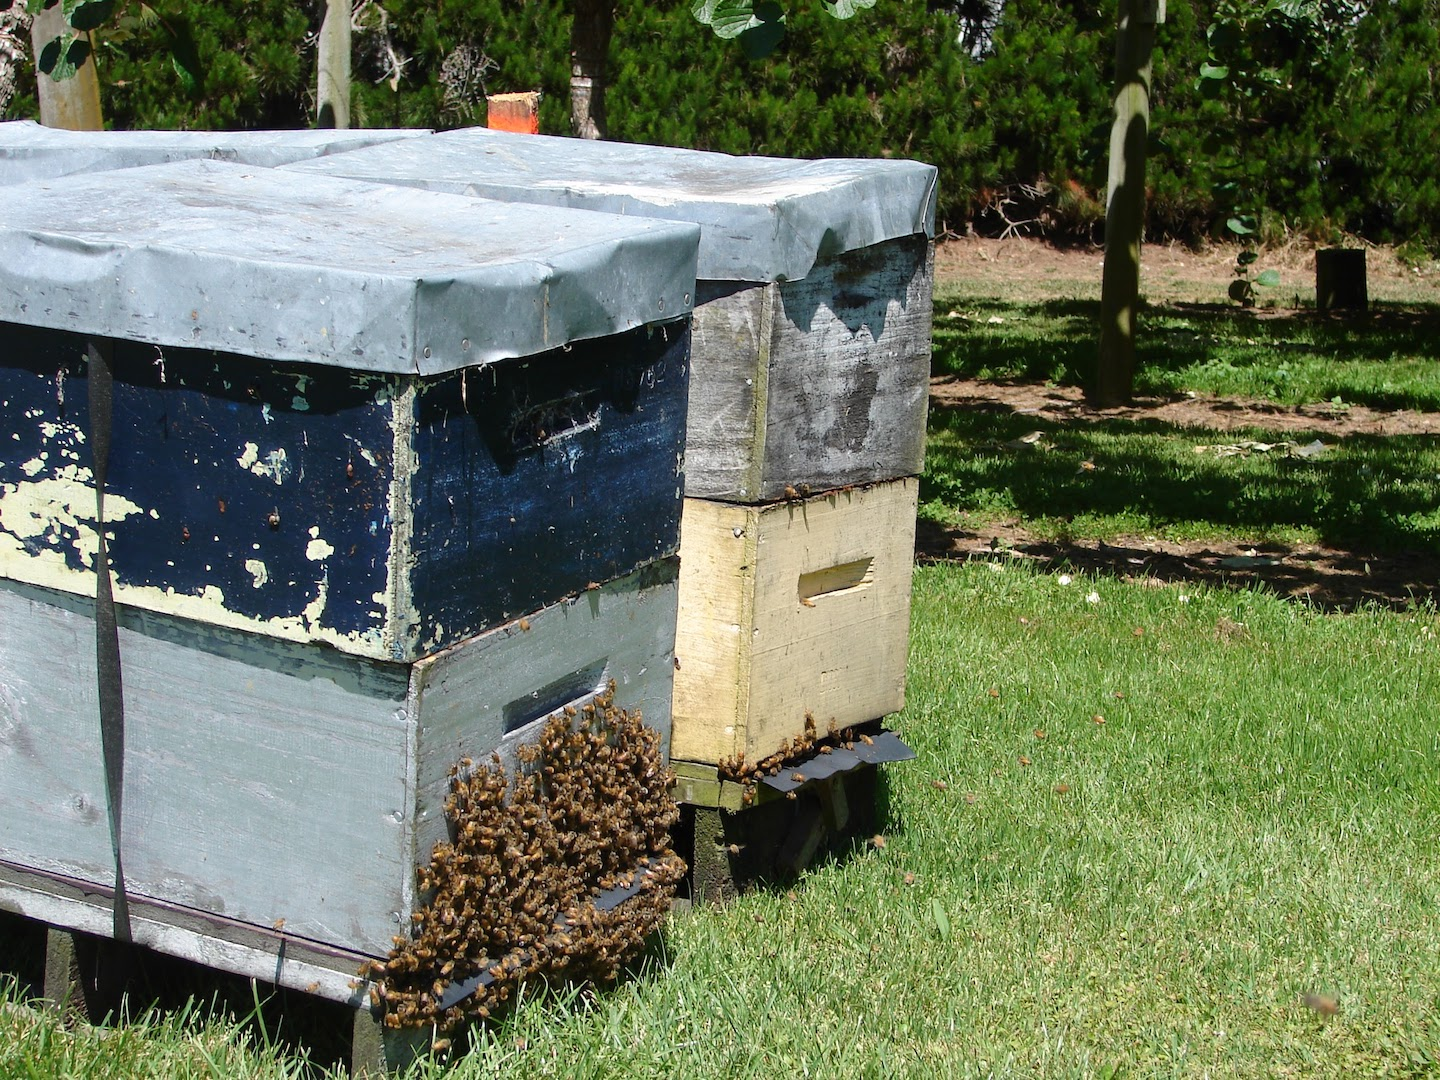 Bees for the orchard